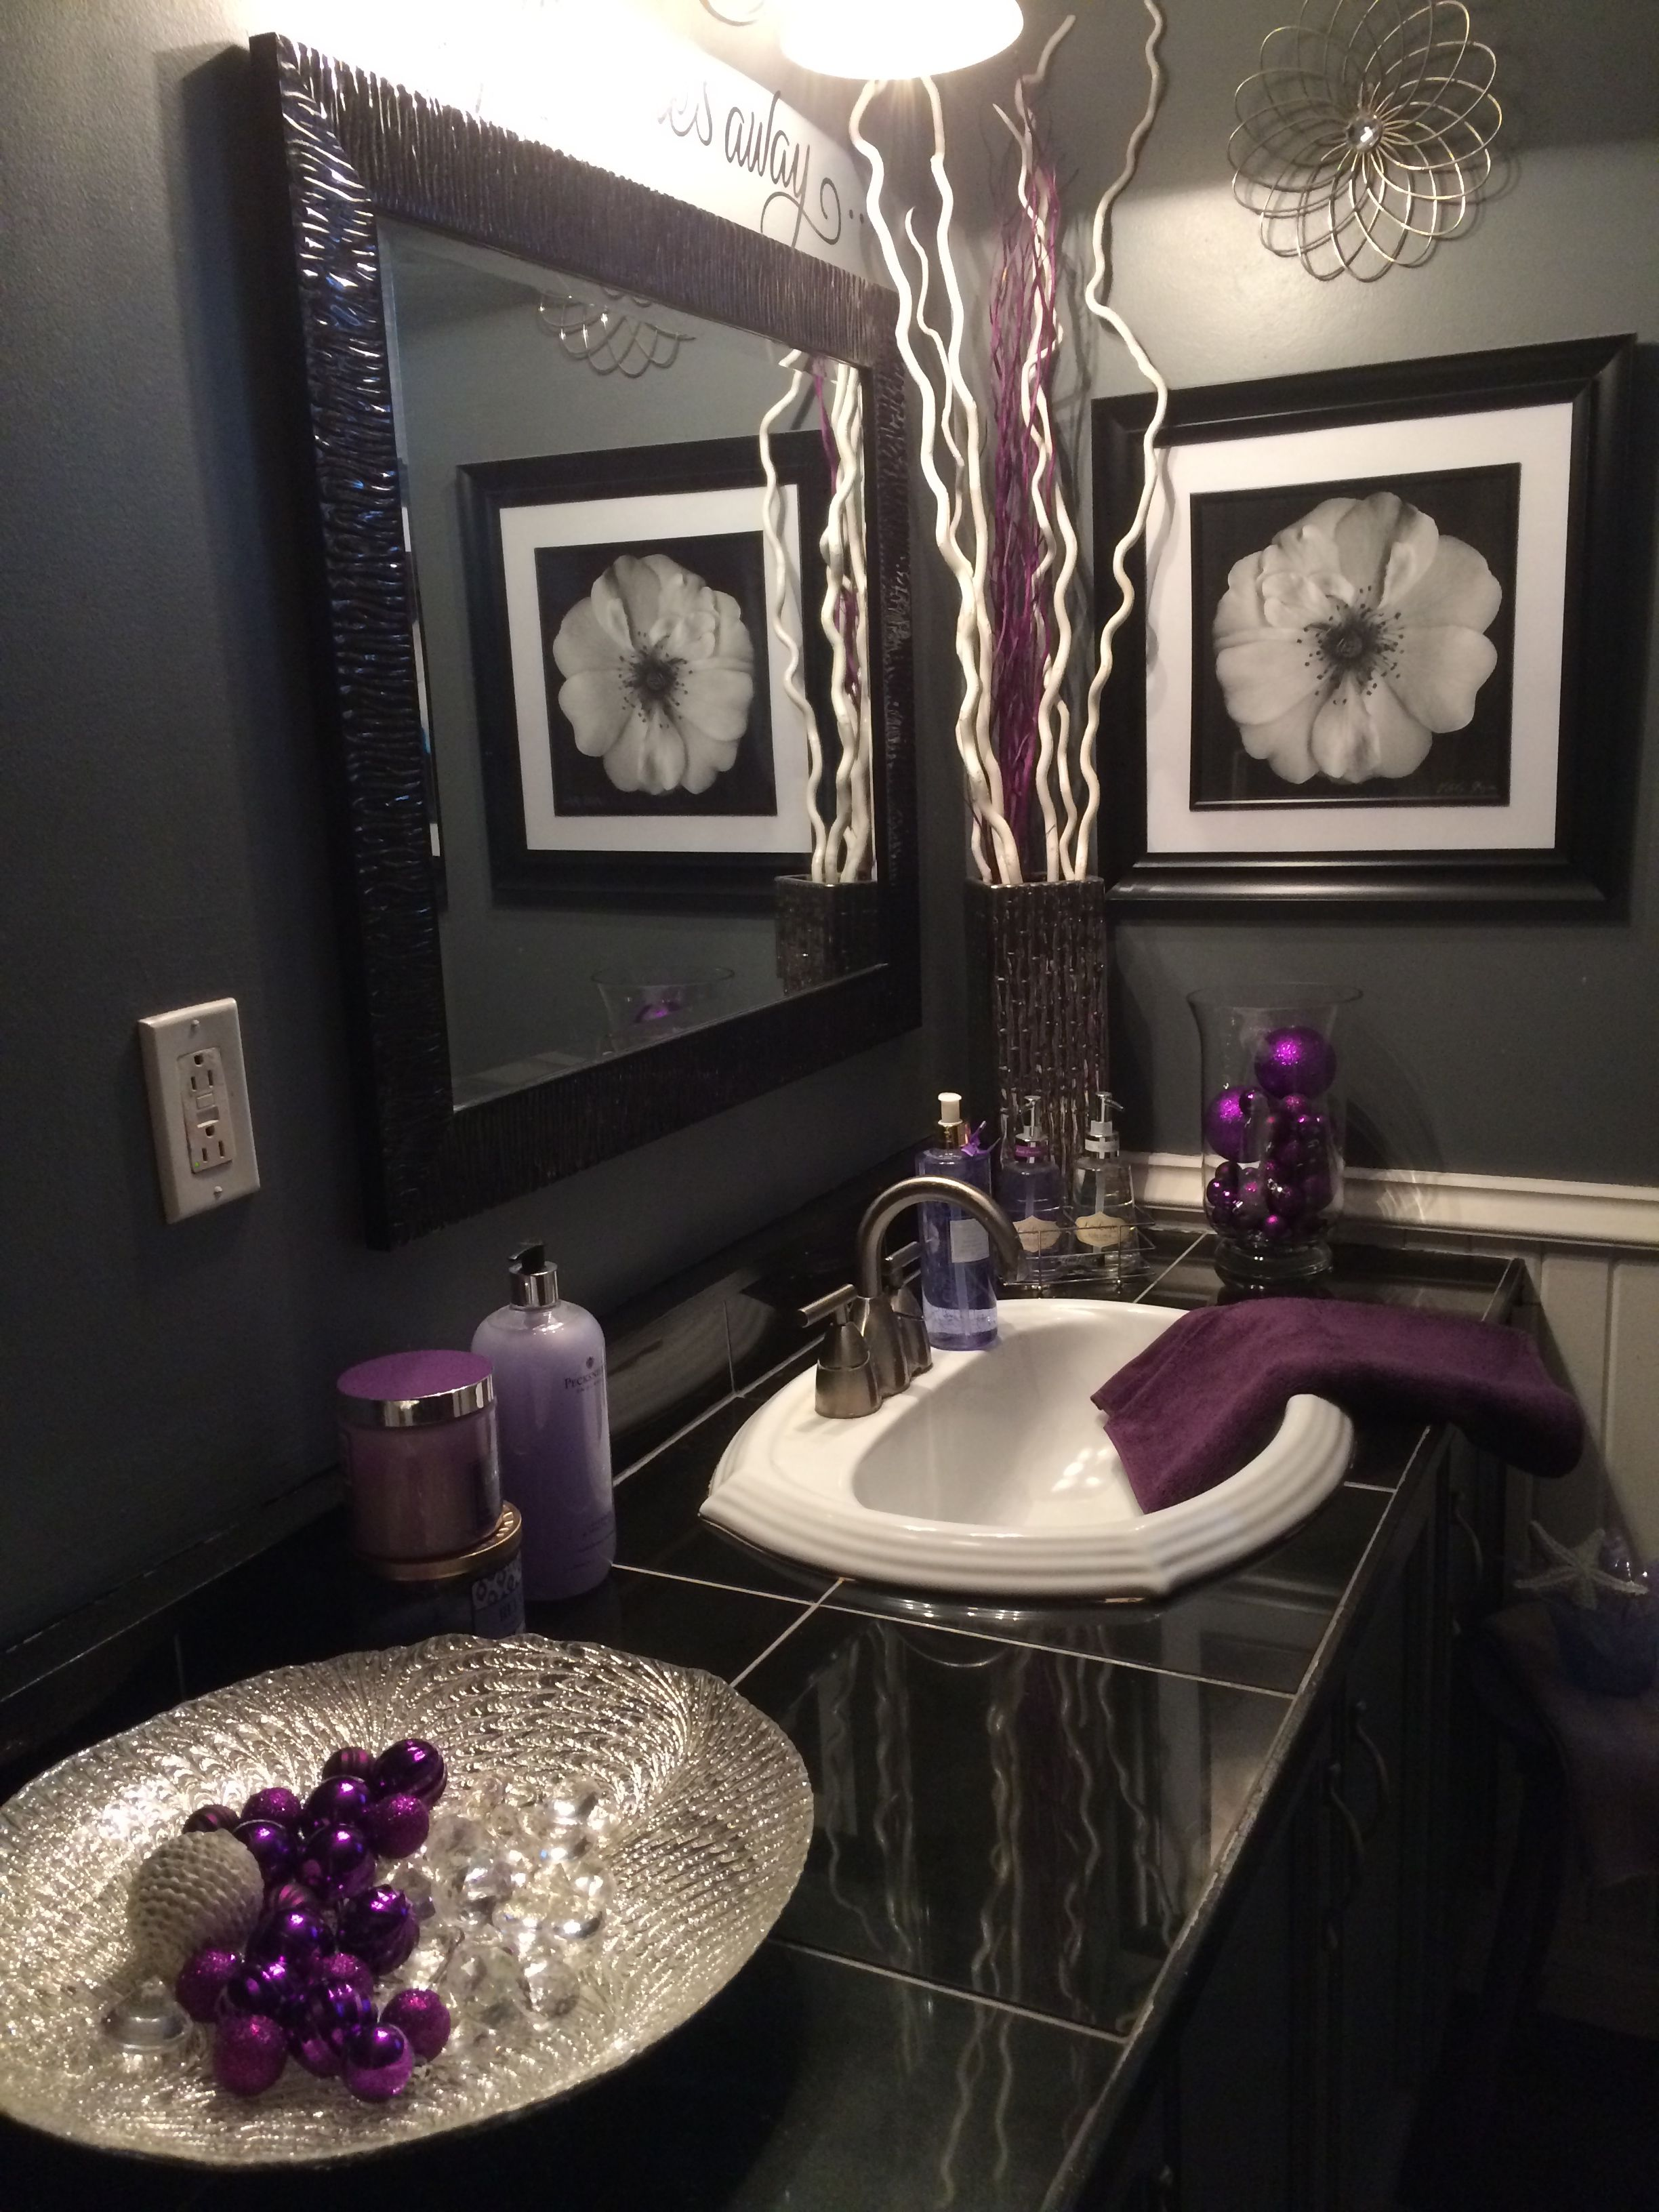 Black and grey bathroom with lavender accents  Purple bathroom